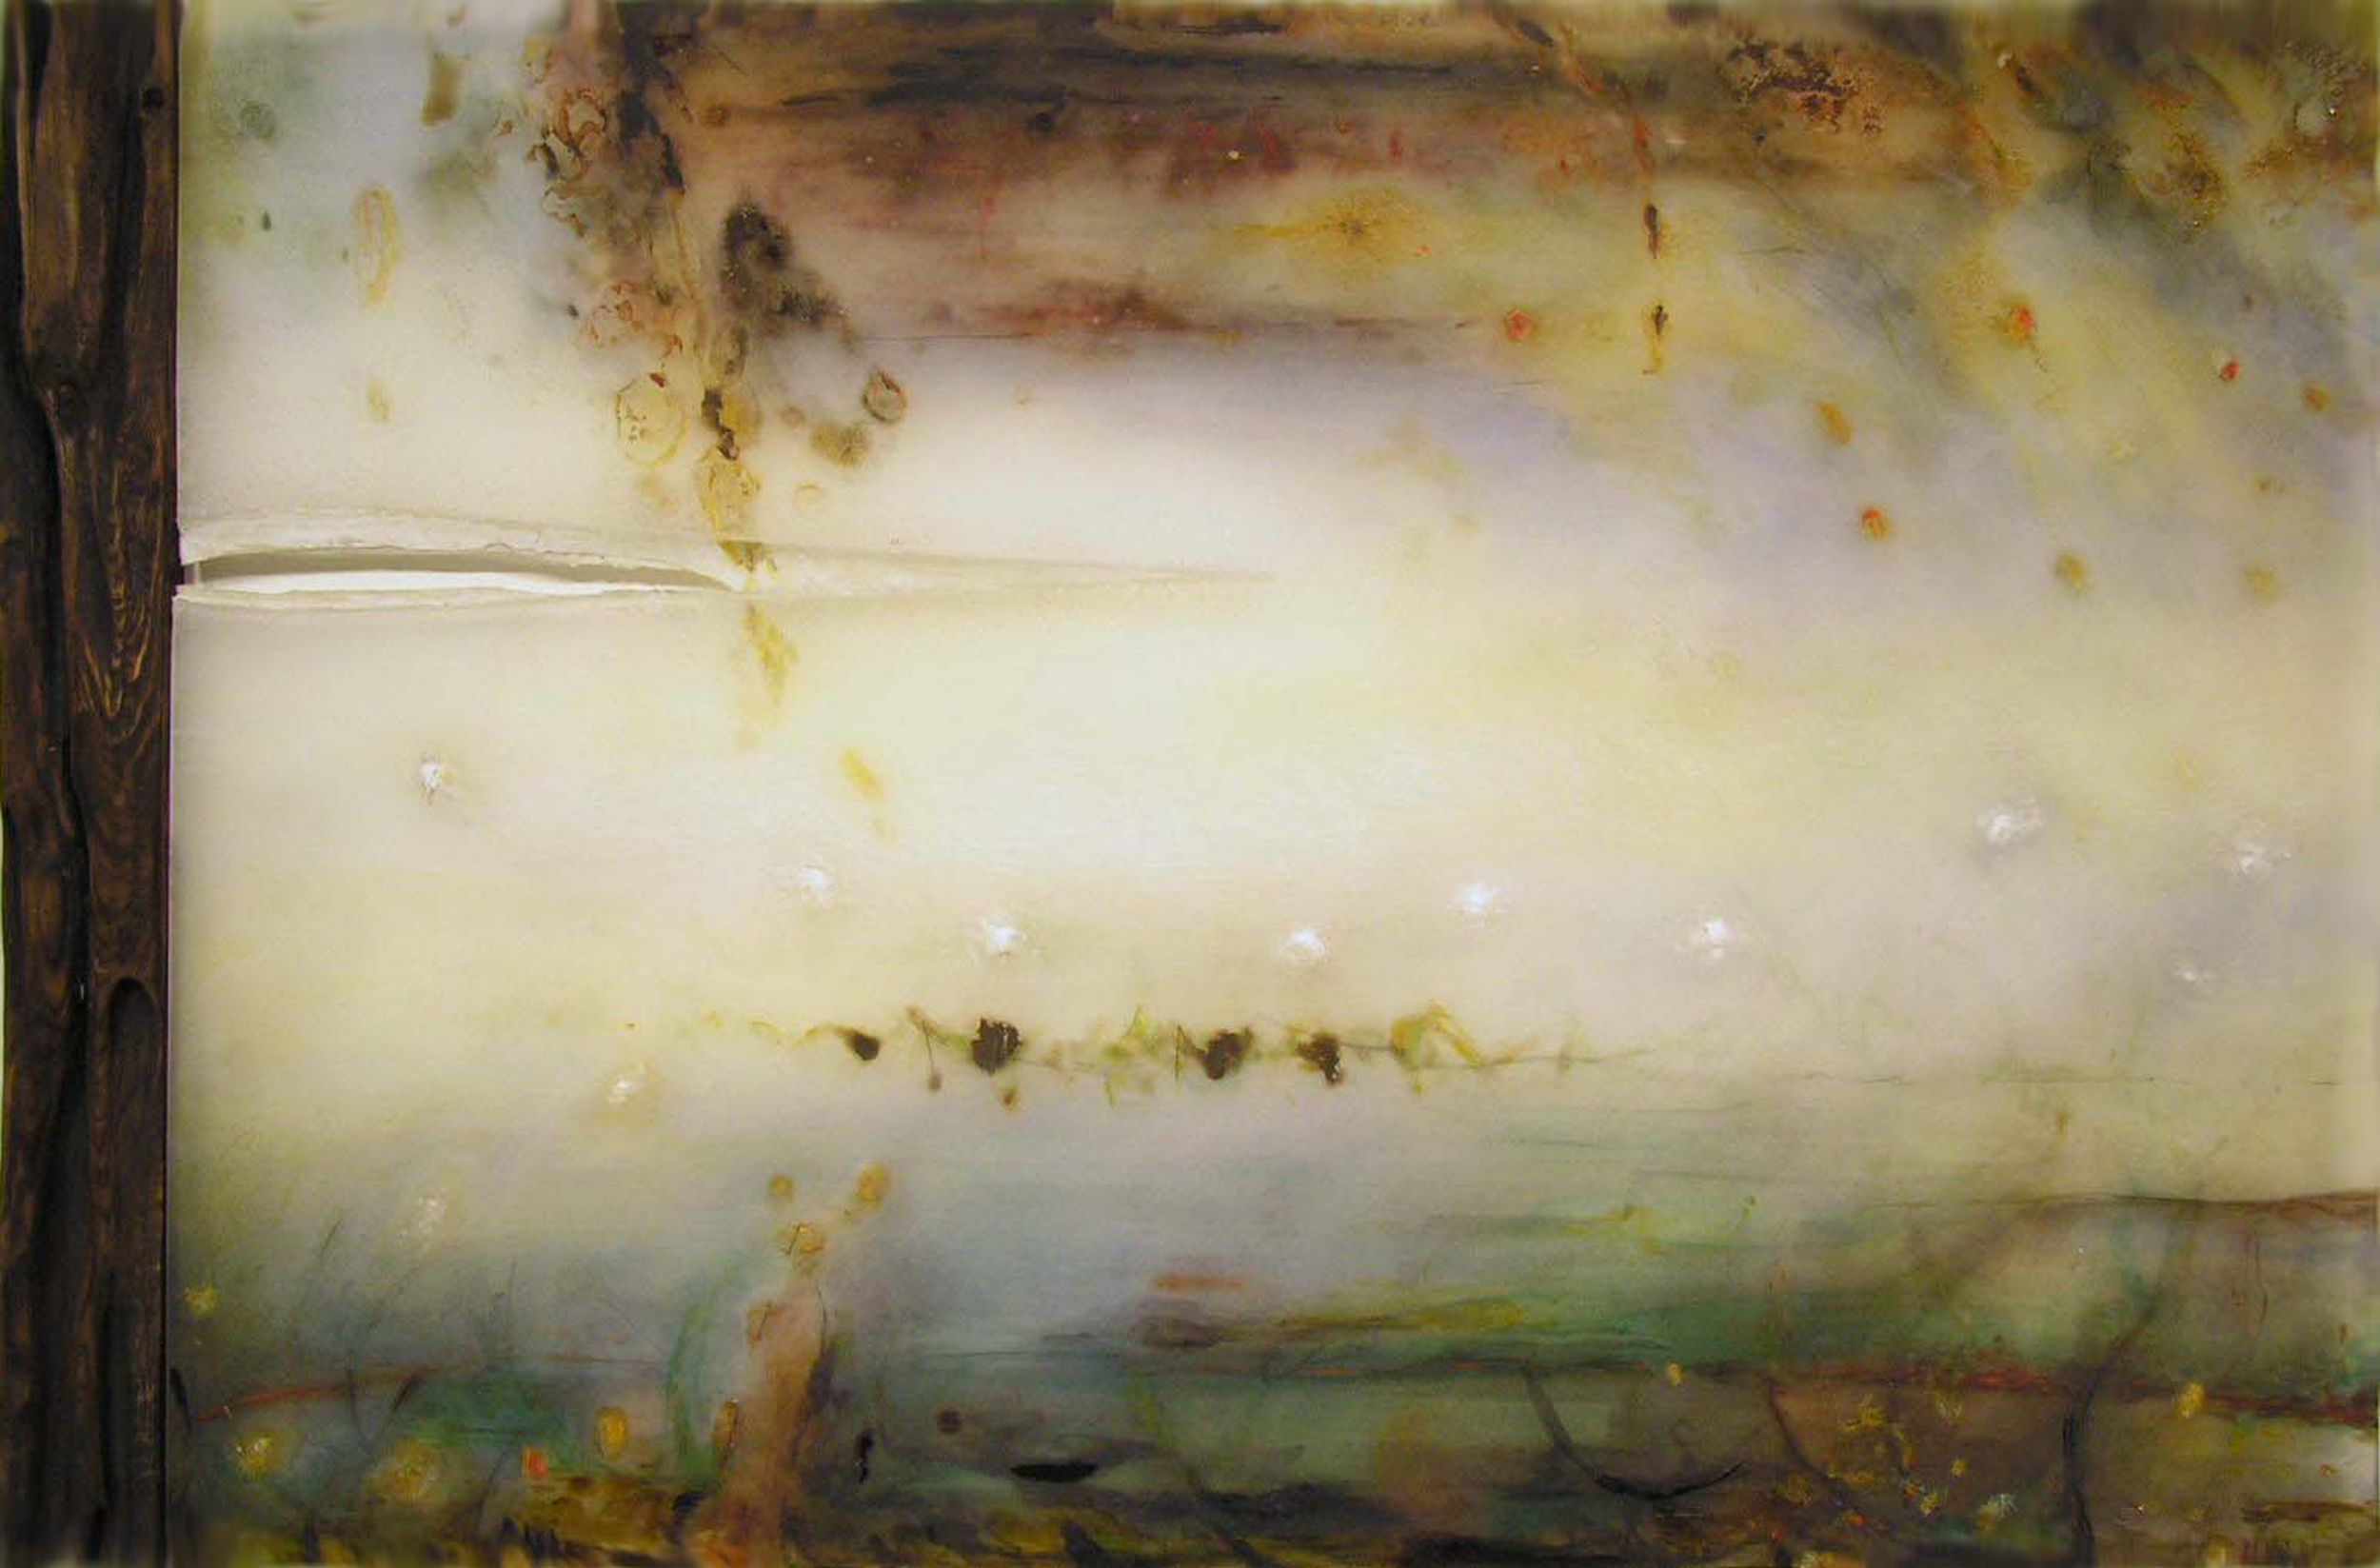 Water Cleaves, Rent of Light , 2005  Oil paint, oil bar, acrylic, and prismacolor on plexi, wood 37 x 29 x 1 inches